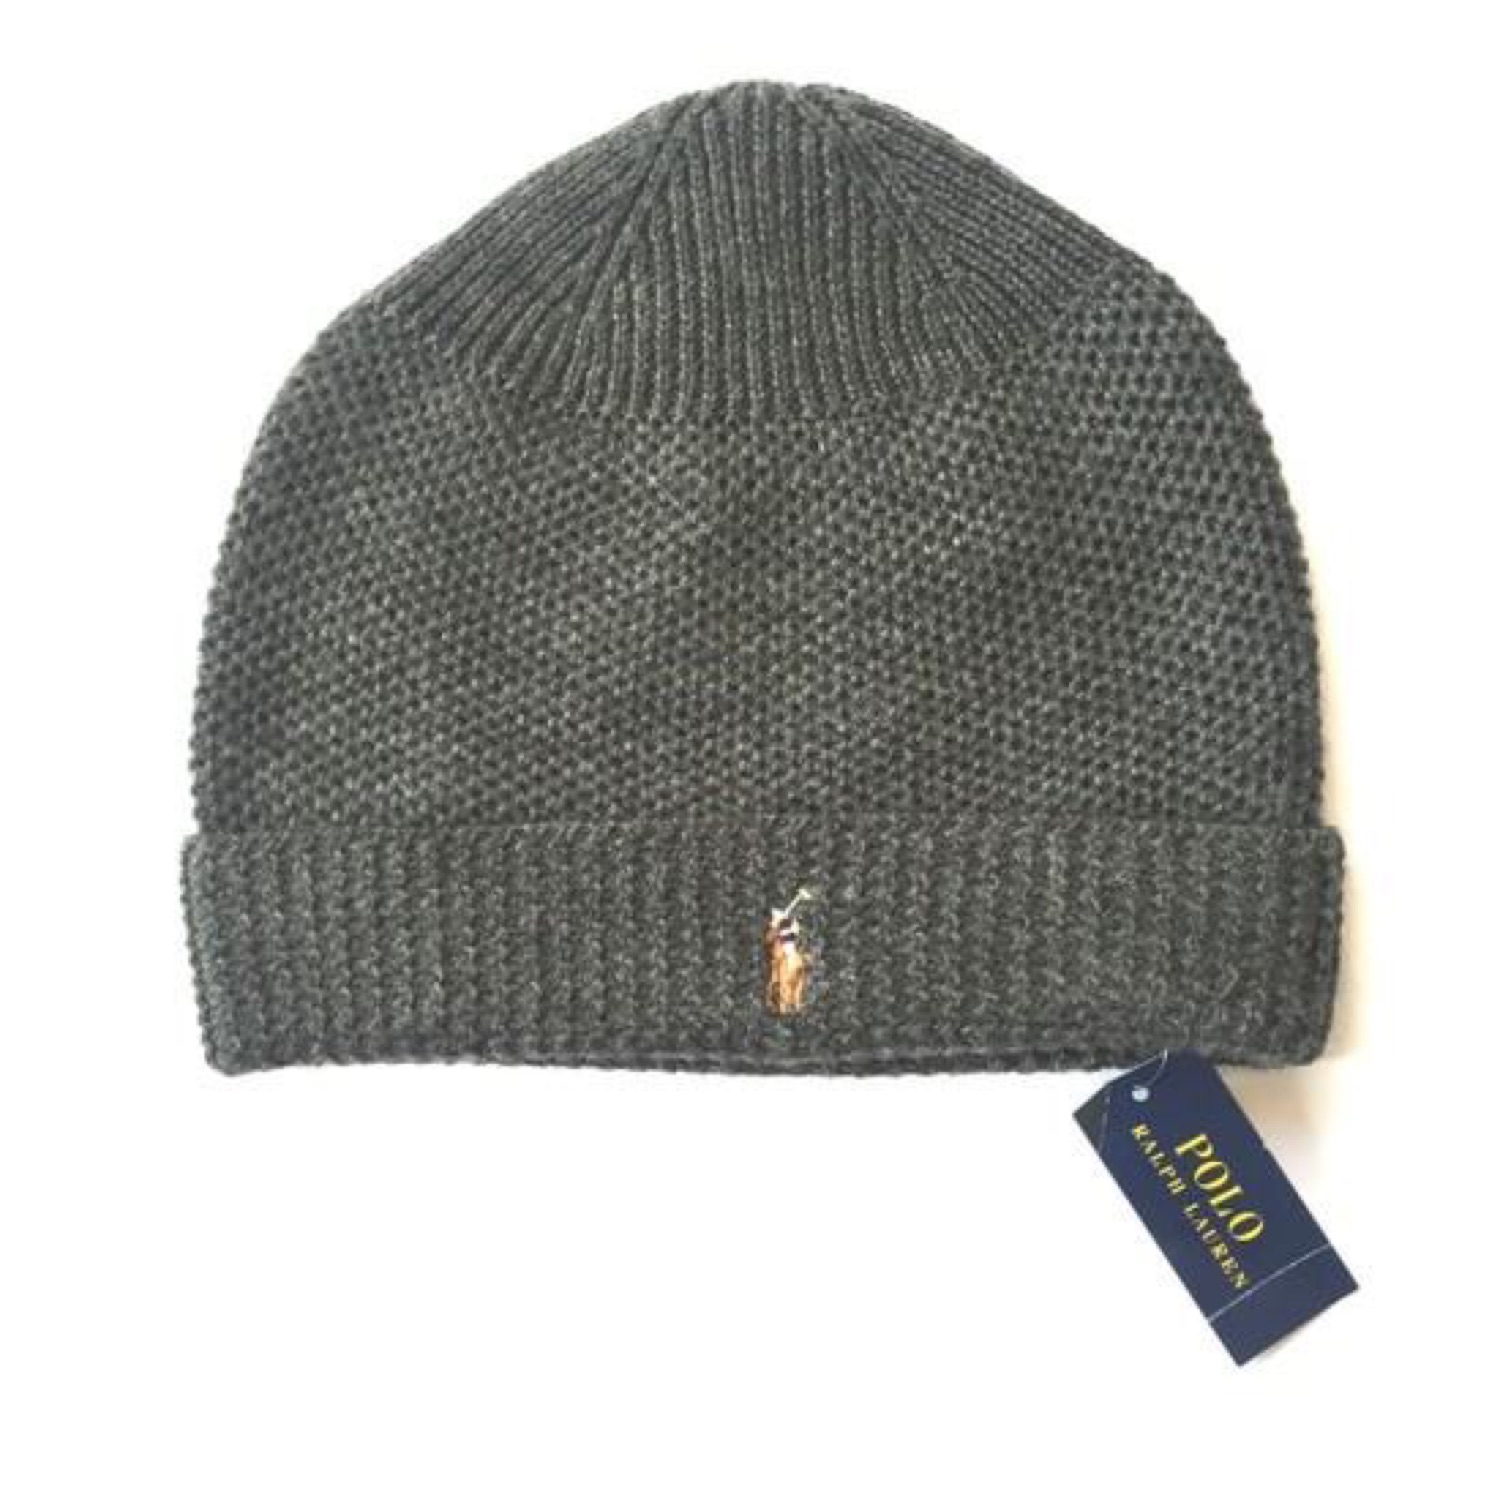 NWT $45 Polo Ralph Lauren Men/'s Gray Merino Wool Pony Logo Knit Beanie AUTHENTIC